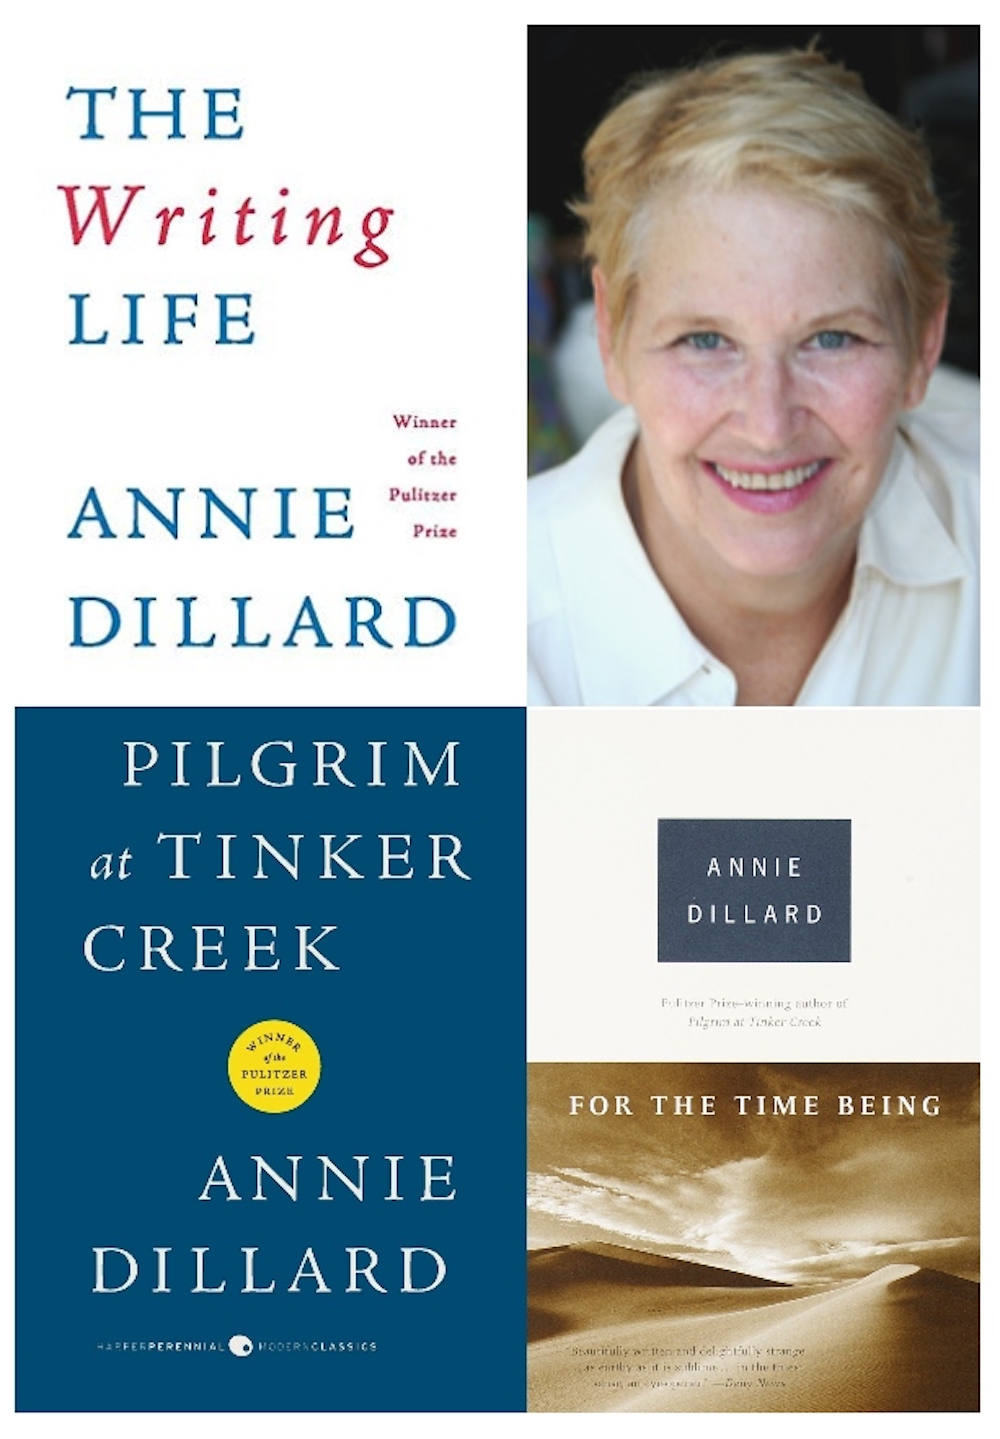 Silent All These Years: On Annie Dillard - The Millions